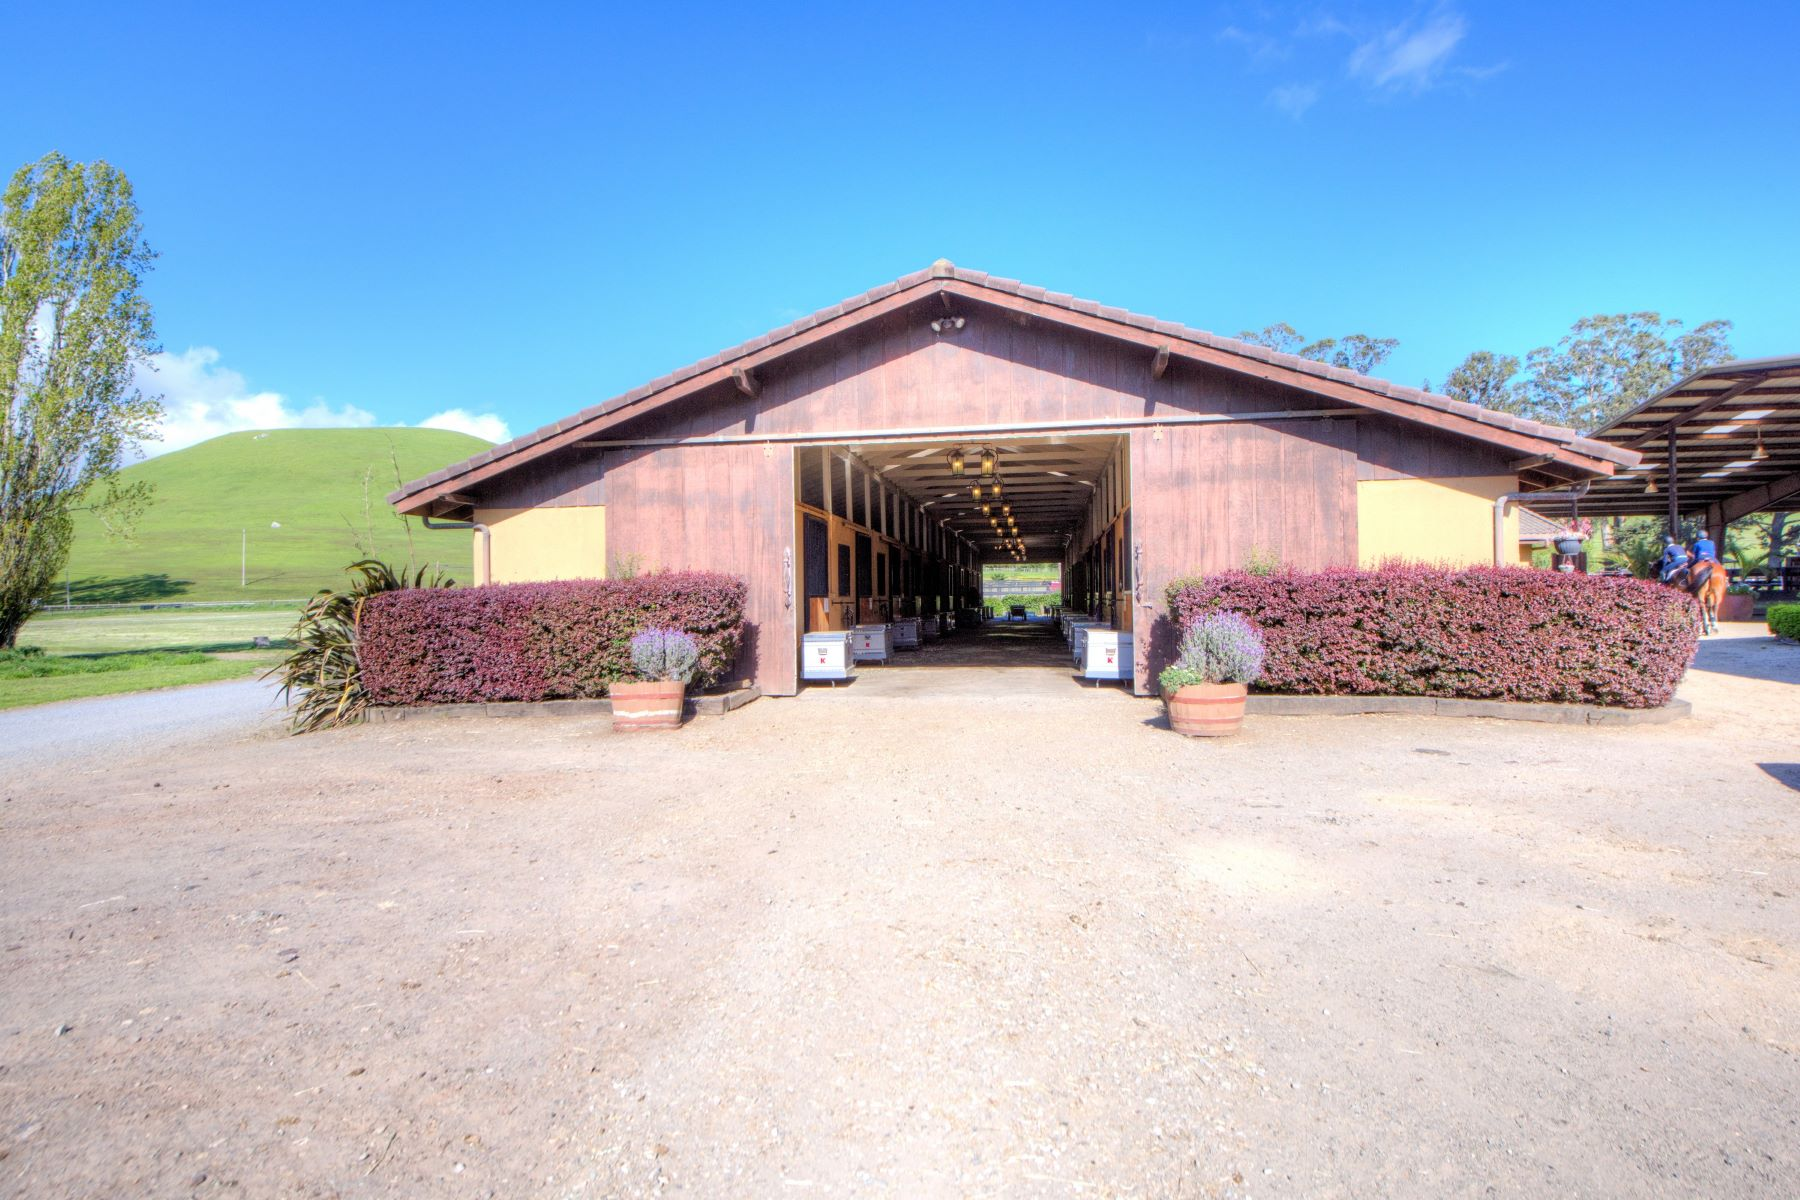 Additional photo for property listing at Equestrian Estate 3431 Nicasio Valley Rd Nicasio, Калифорния 94946 Соединенные Штаты